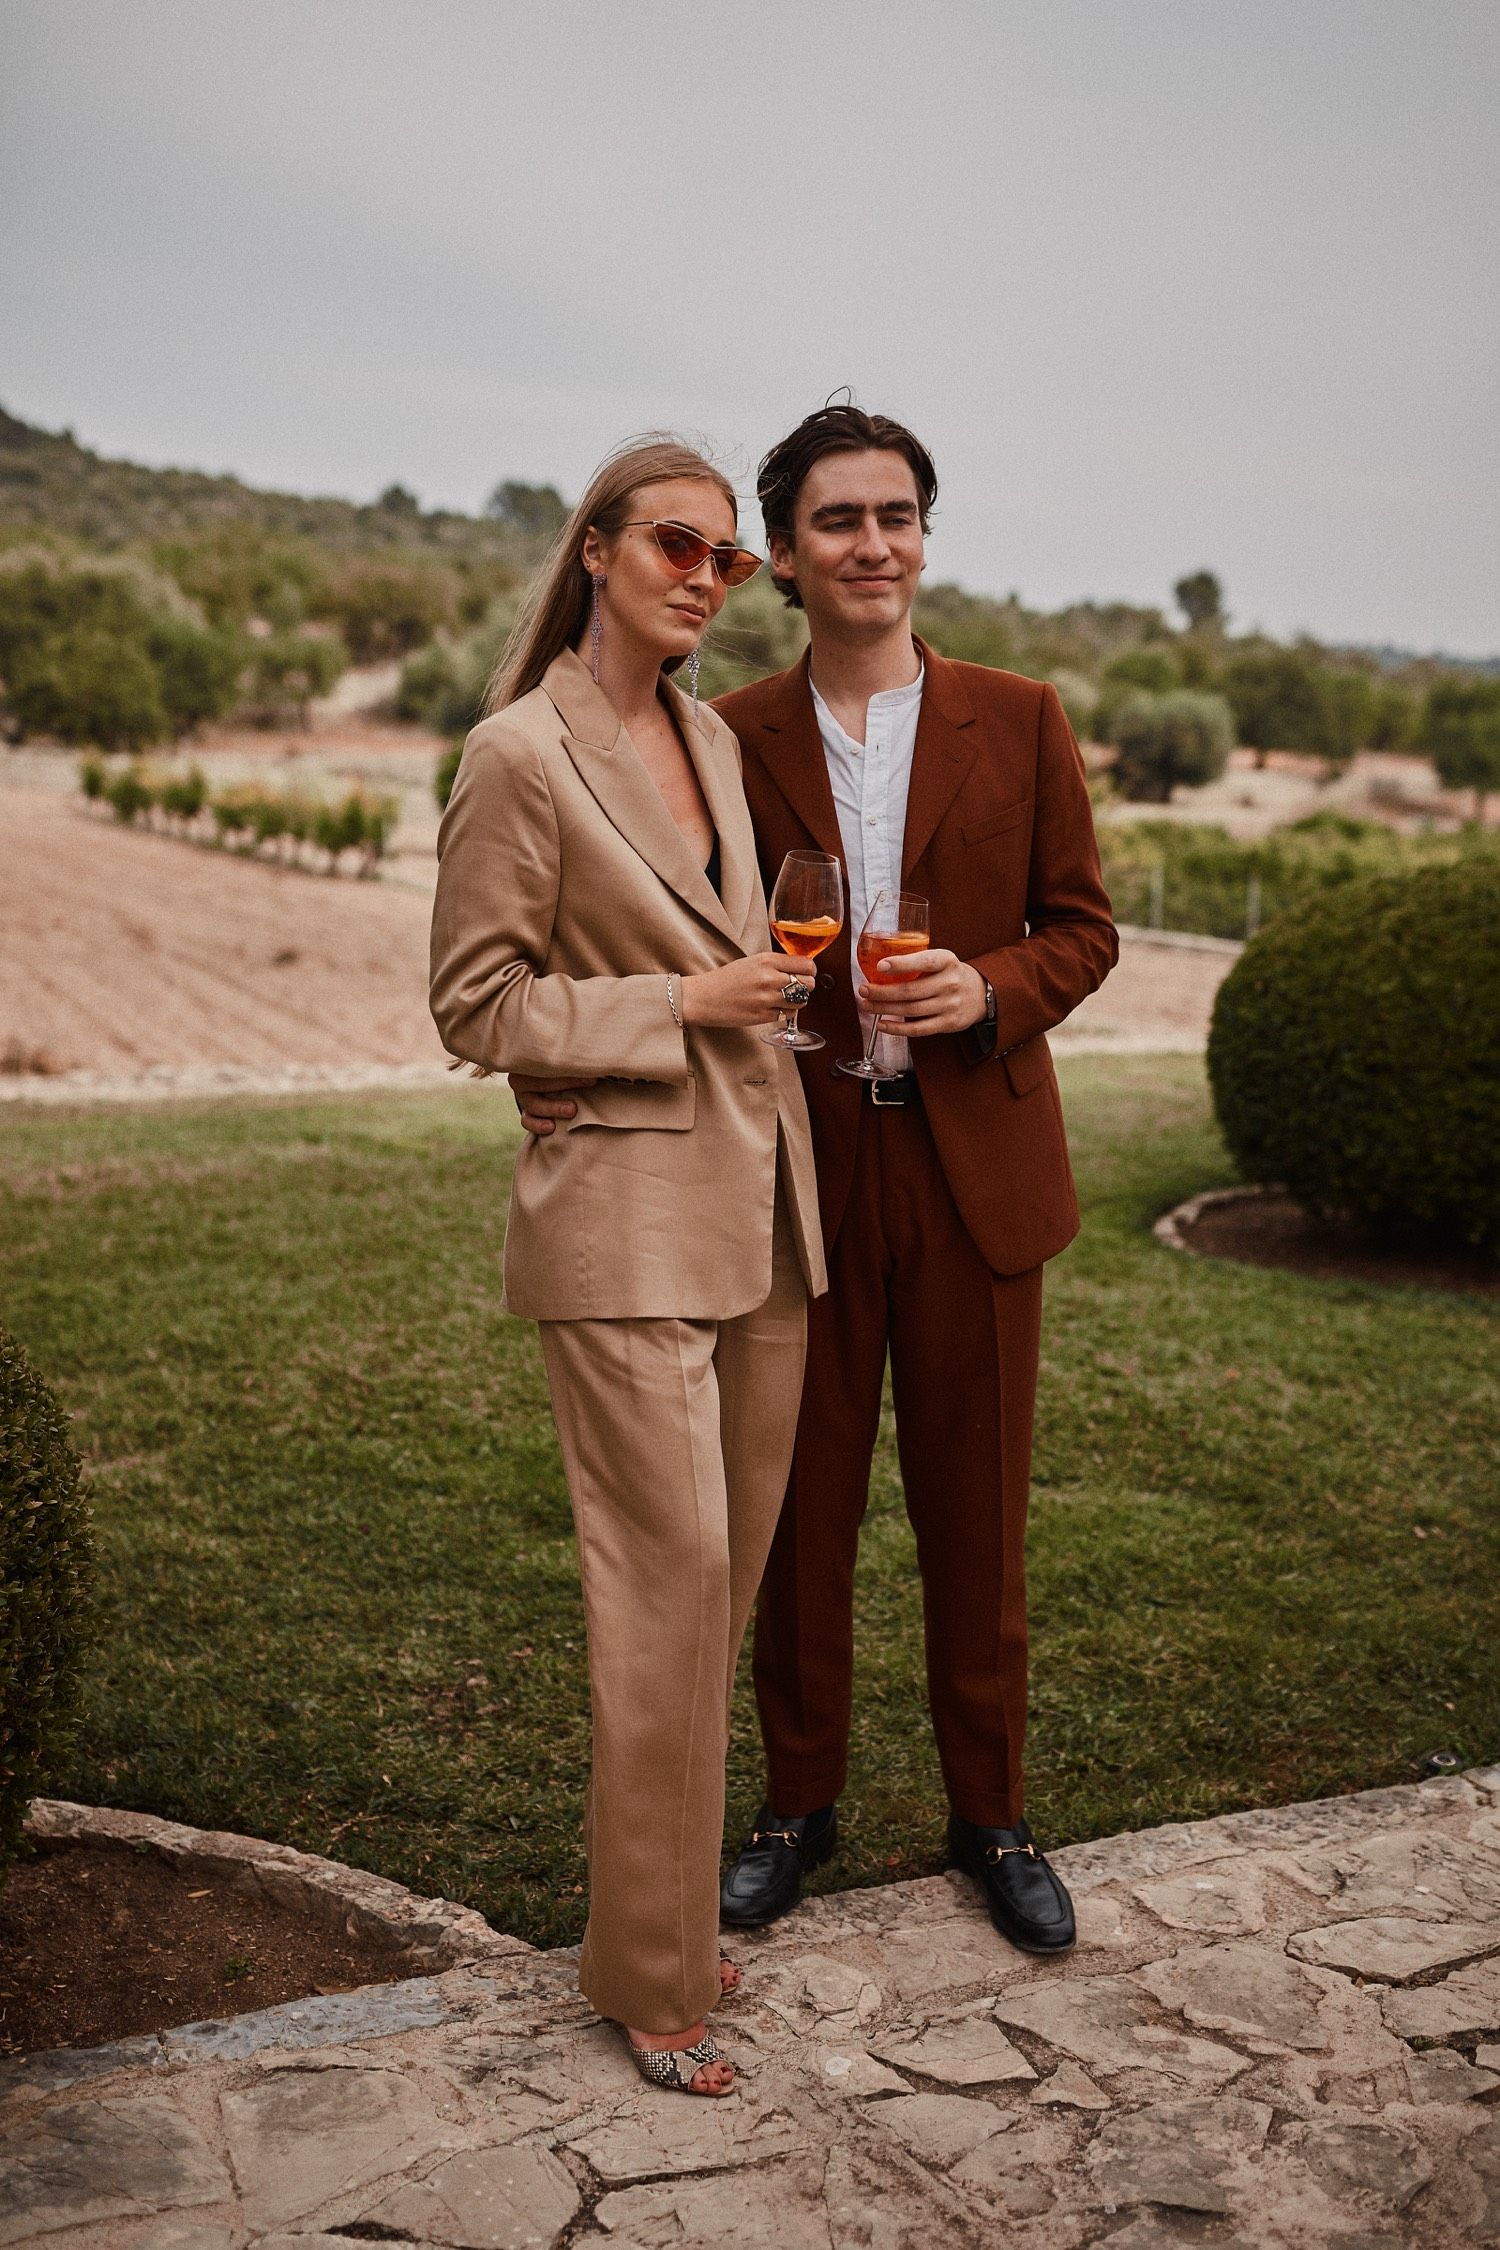 Female Wedding Guest In A Suit Image By Benjamin Wheeler Androgynous Wedding Guest Style Women Wedding Guest Suits Wedding Guest Outfit Wedding Guest Style